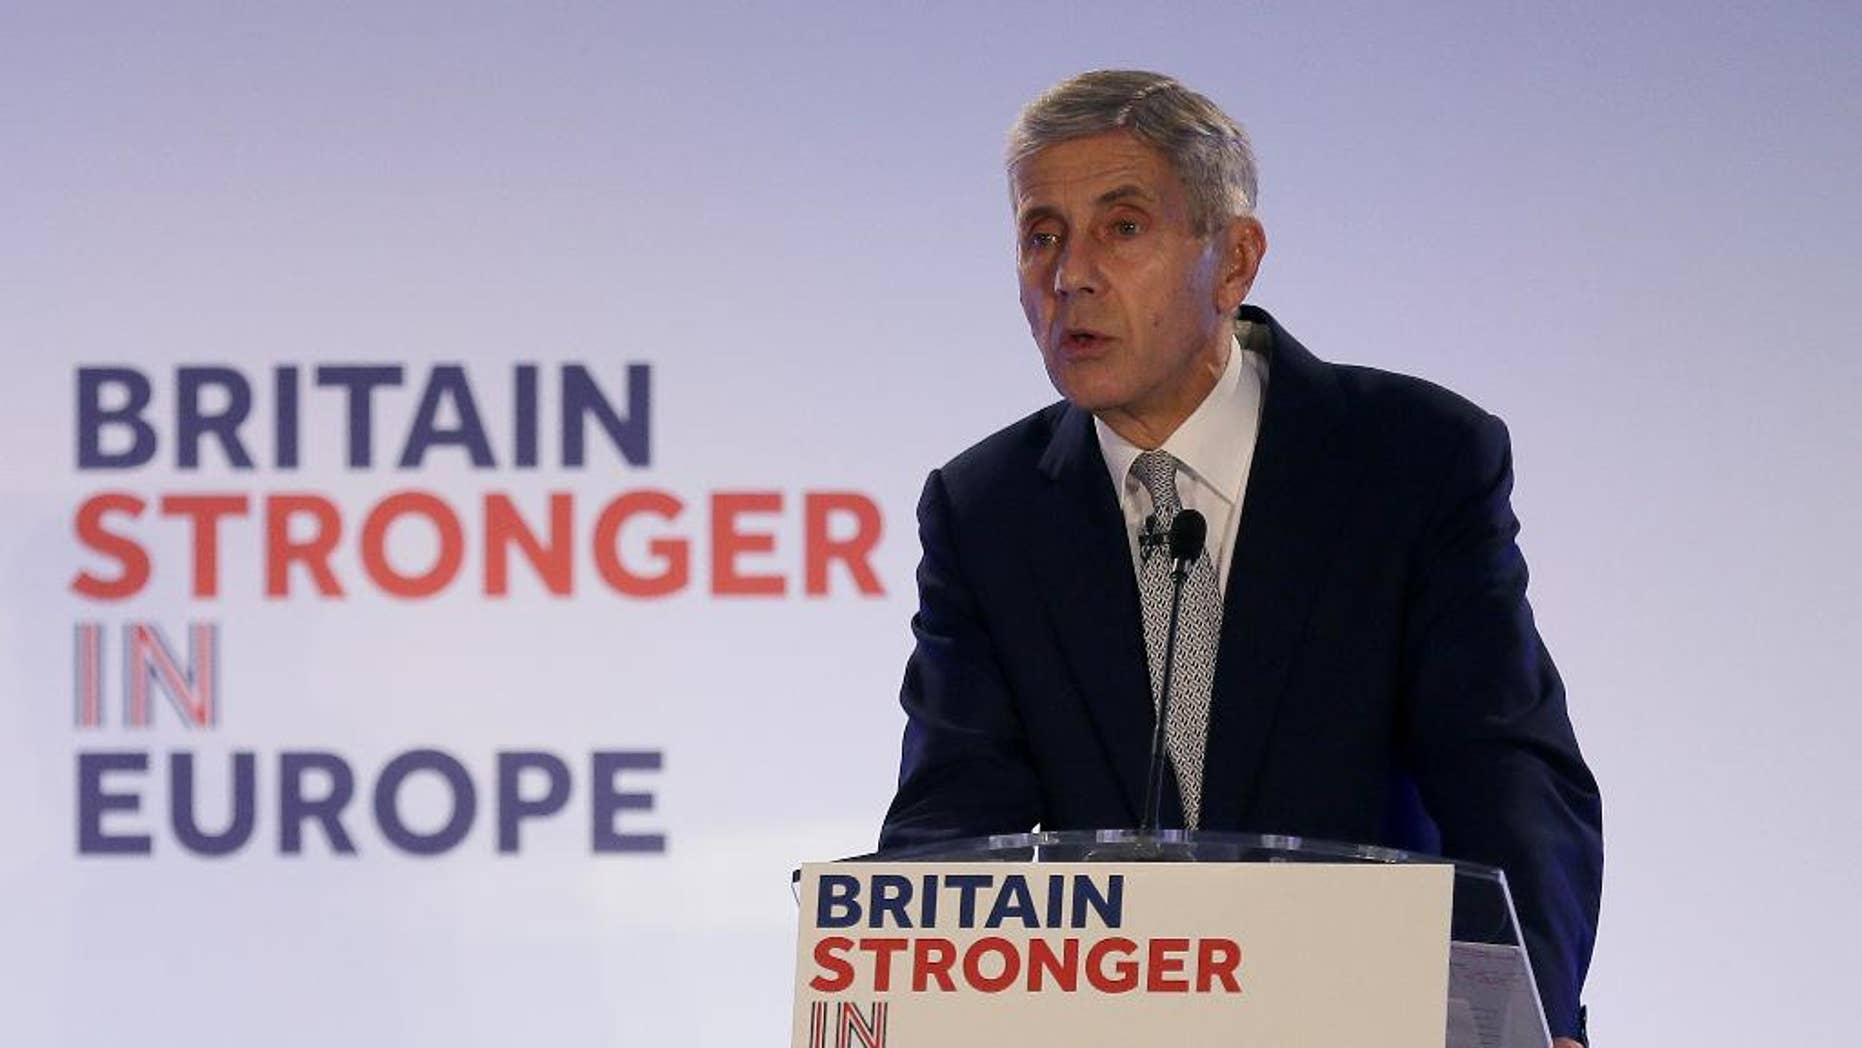 Stuart Rose, campaign chairman for the Britain Stronger in Europe group, makes a speech during the launch a campaign to promote close ties with Europe, at Brick Lane in London, Monday, Oct. 12, 2015.  A referendum is expected to be held in the UK before the end of 2017 on whether Britain should remain part of the European Union. (AP Photo/Tim Ireland)